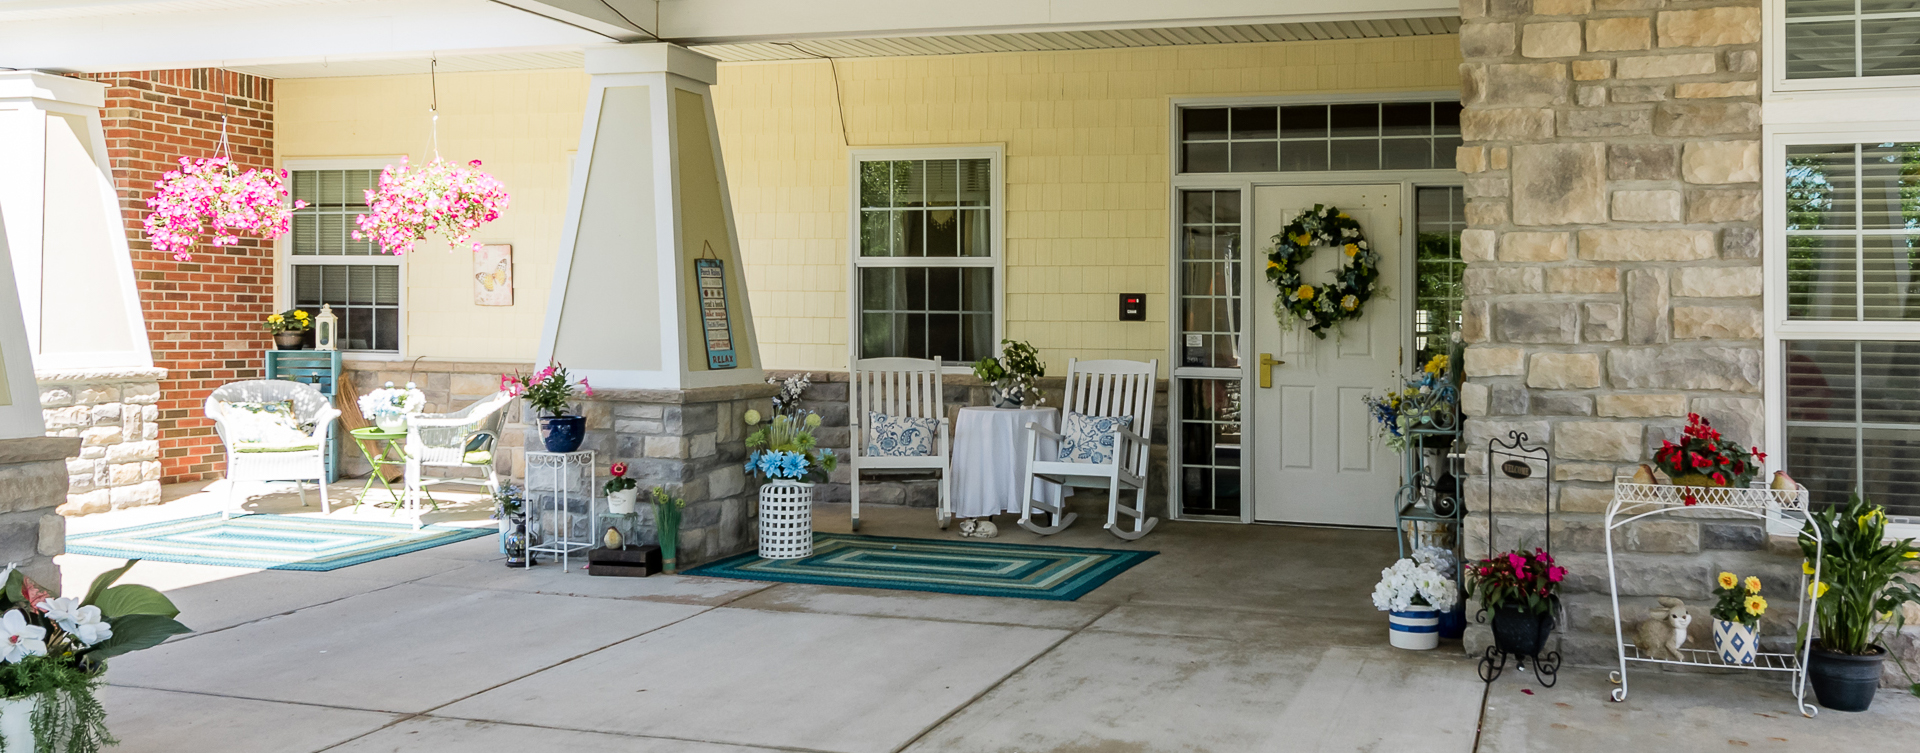 Relax in your favorite chair on the porch at Bickford of Midland